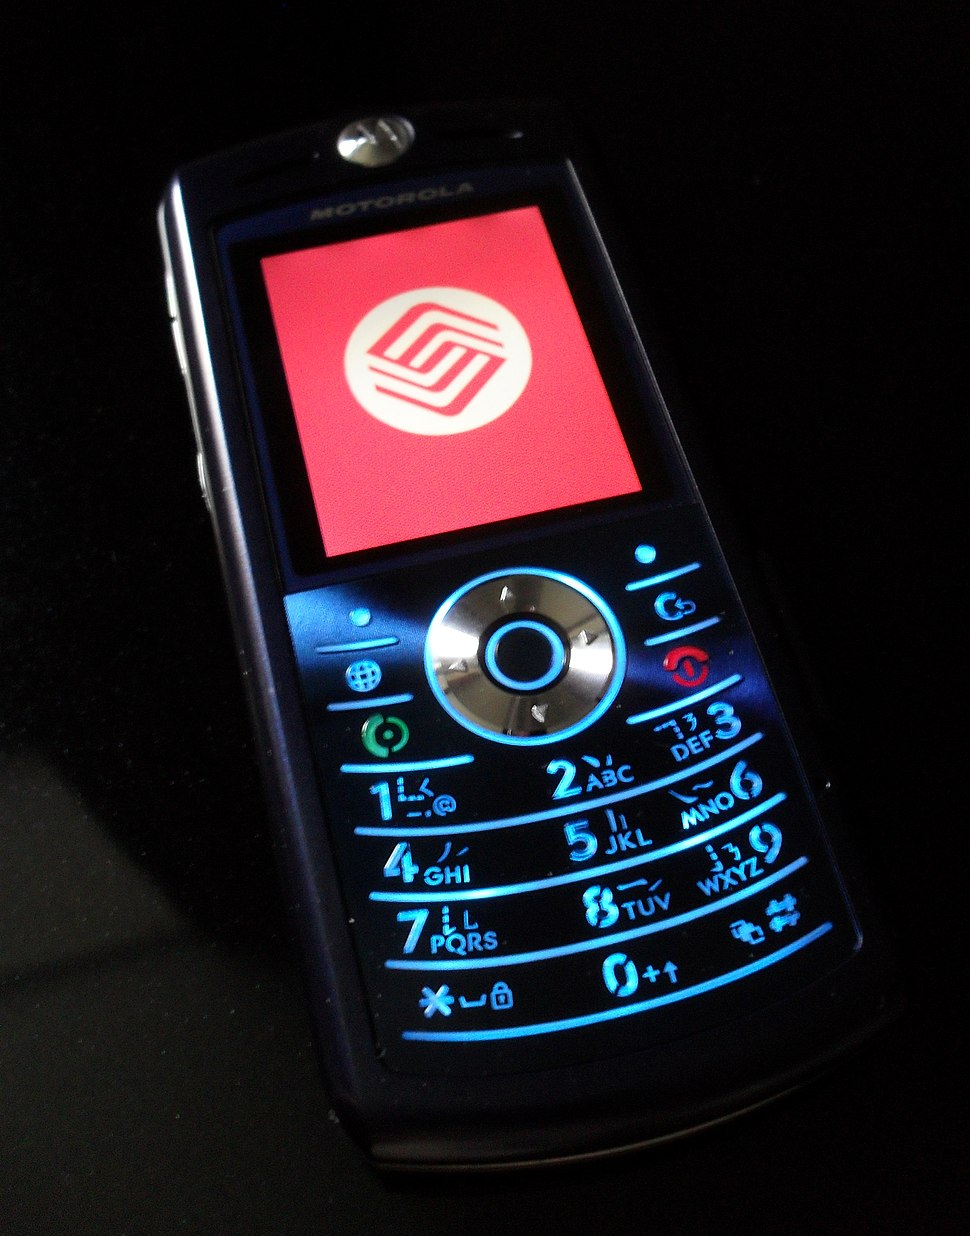 Motorola L71 on the China Mobile network 20100521